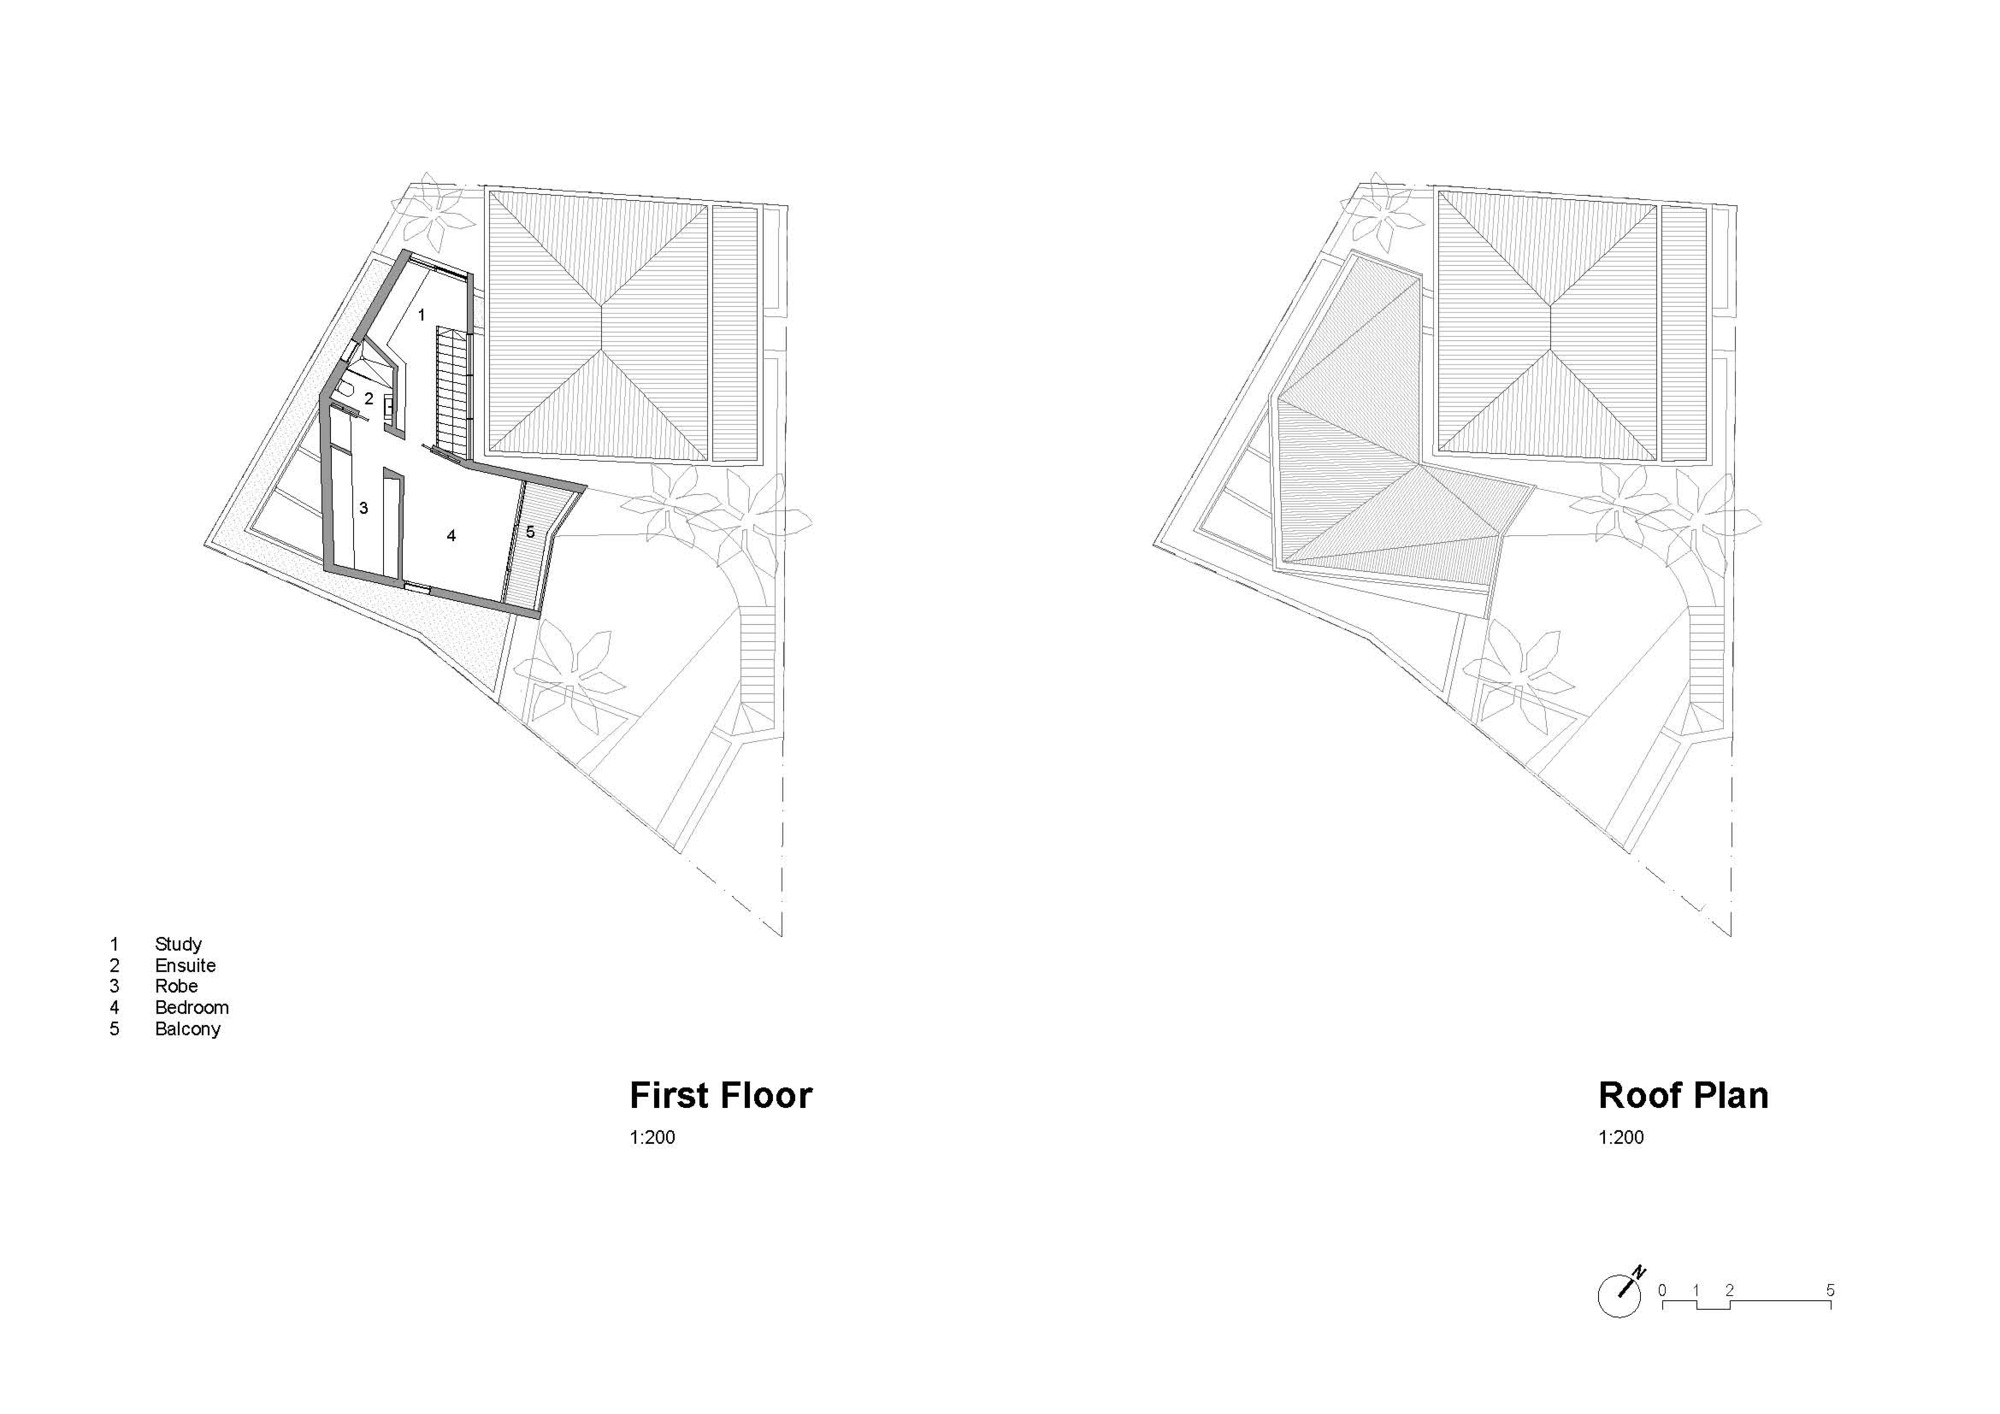 First & Roof Floor Plan